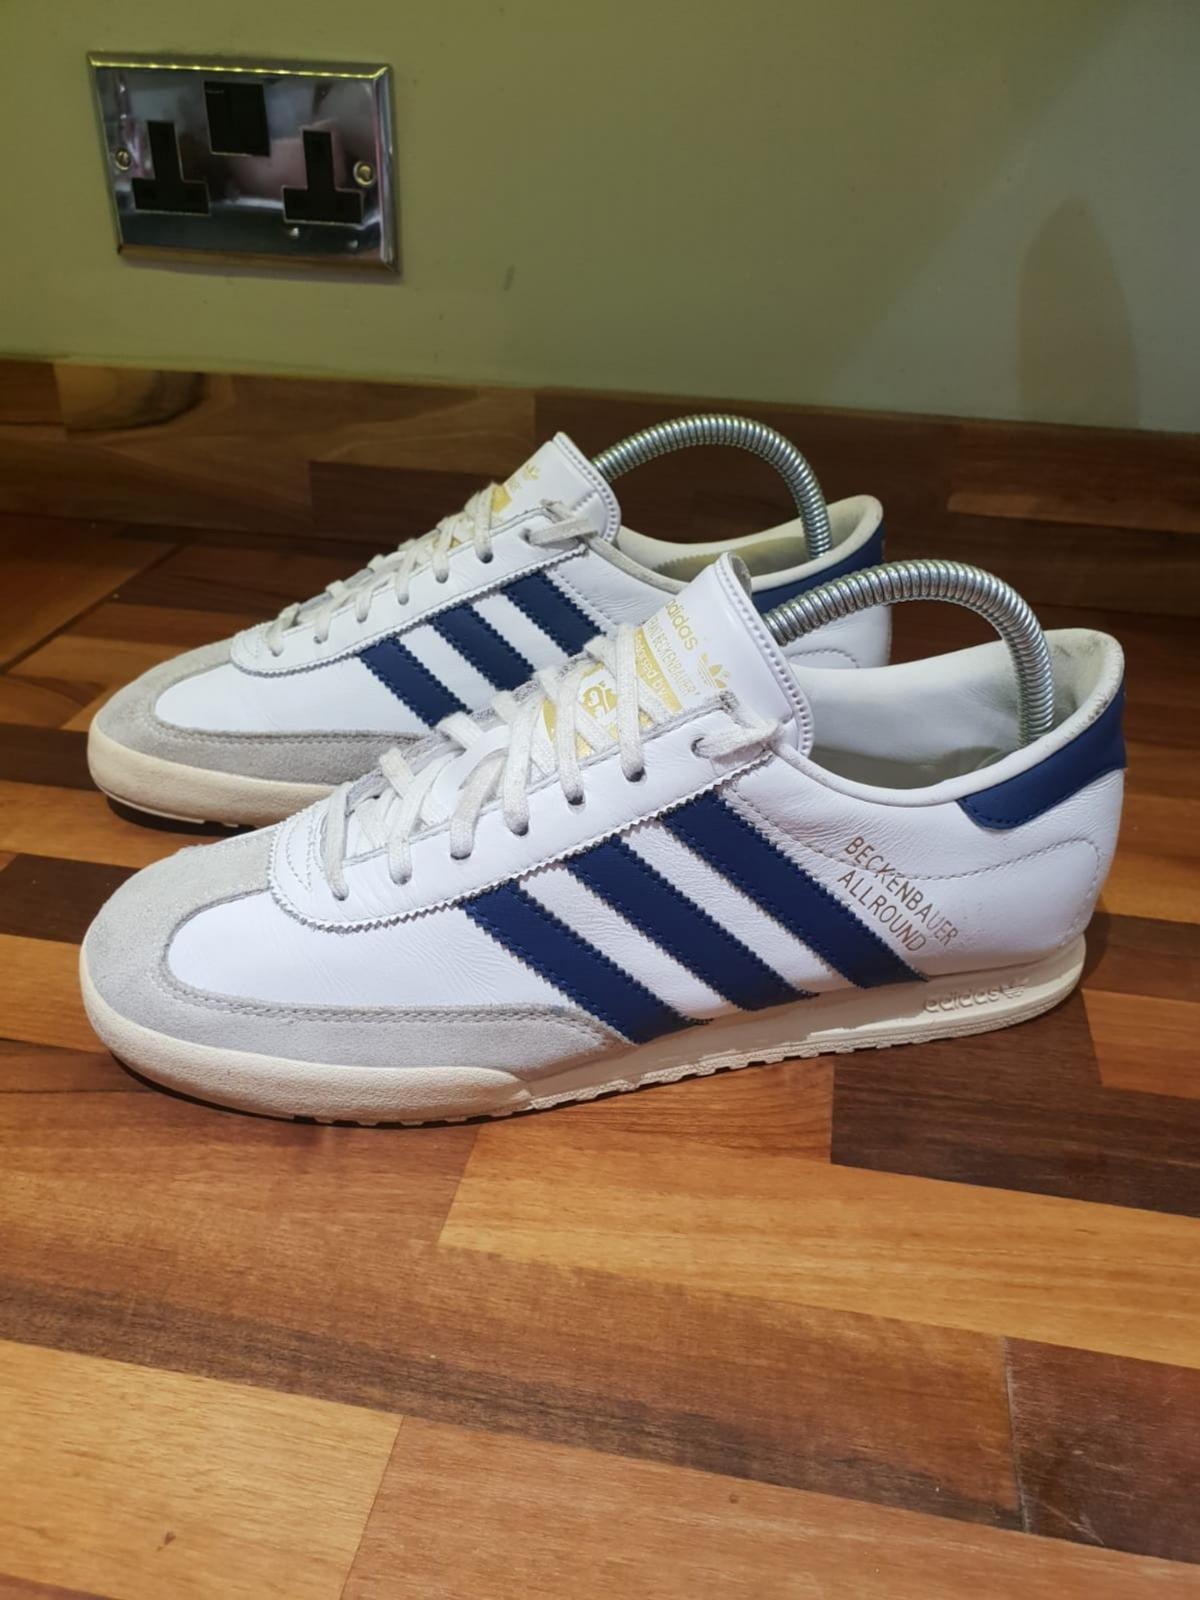 White Adidas trainers infant size 7 in Ashfield for £12.00